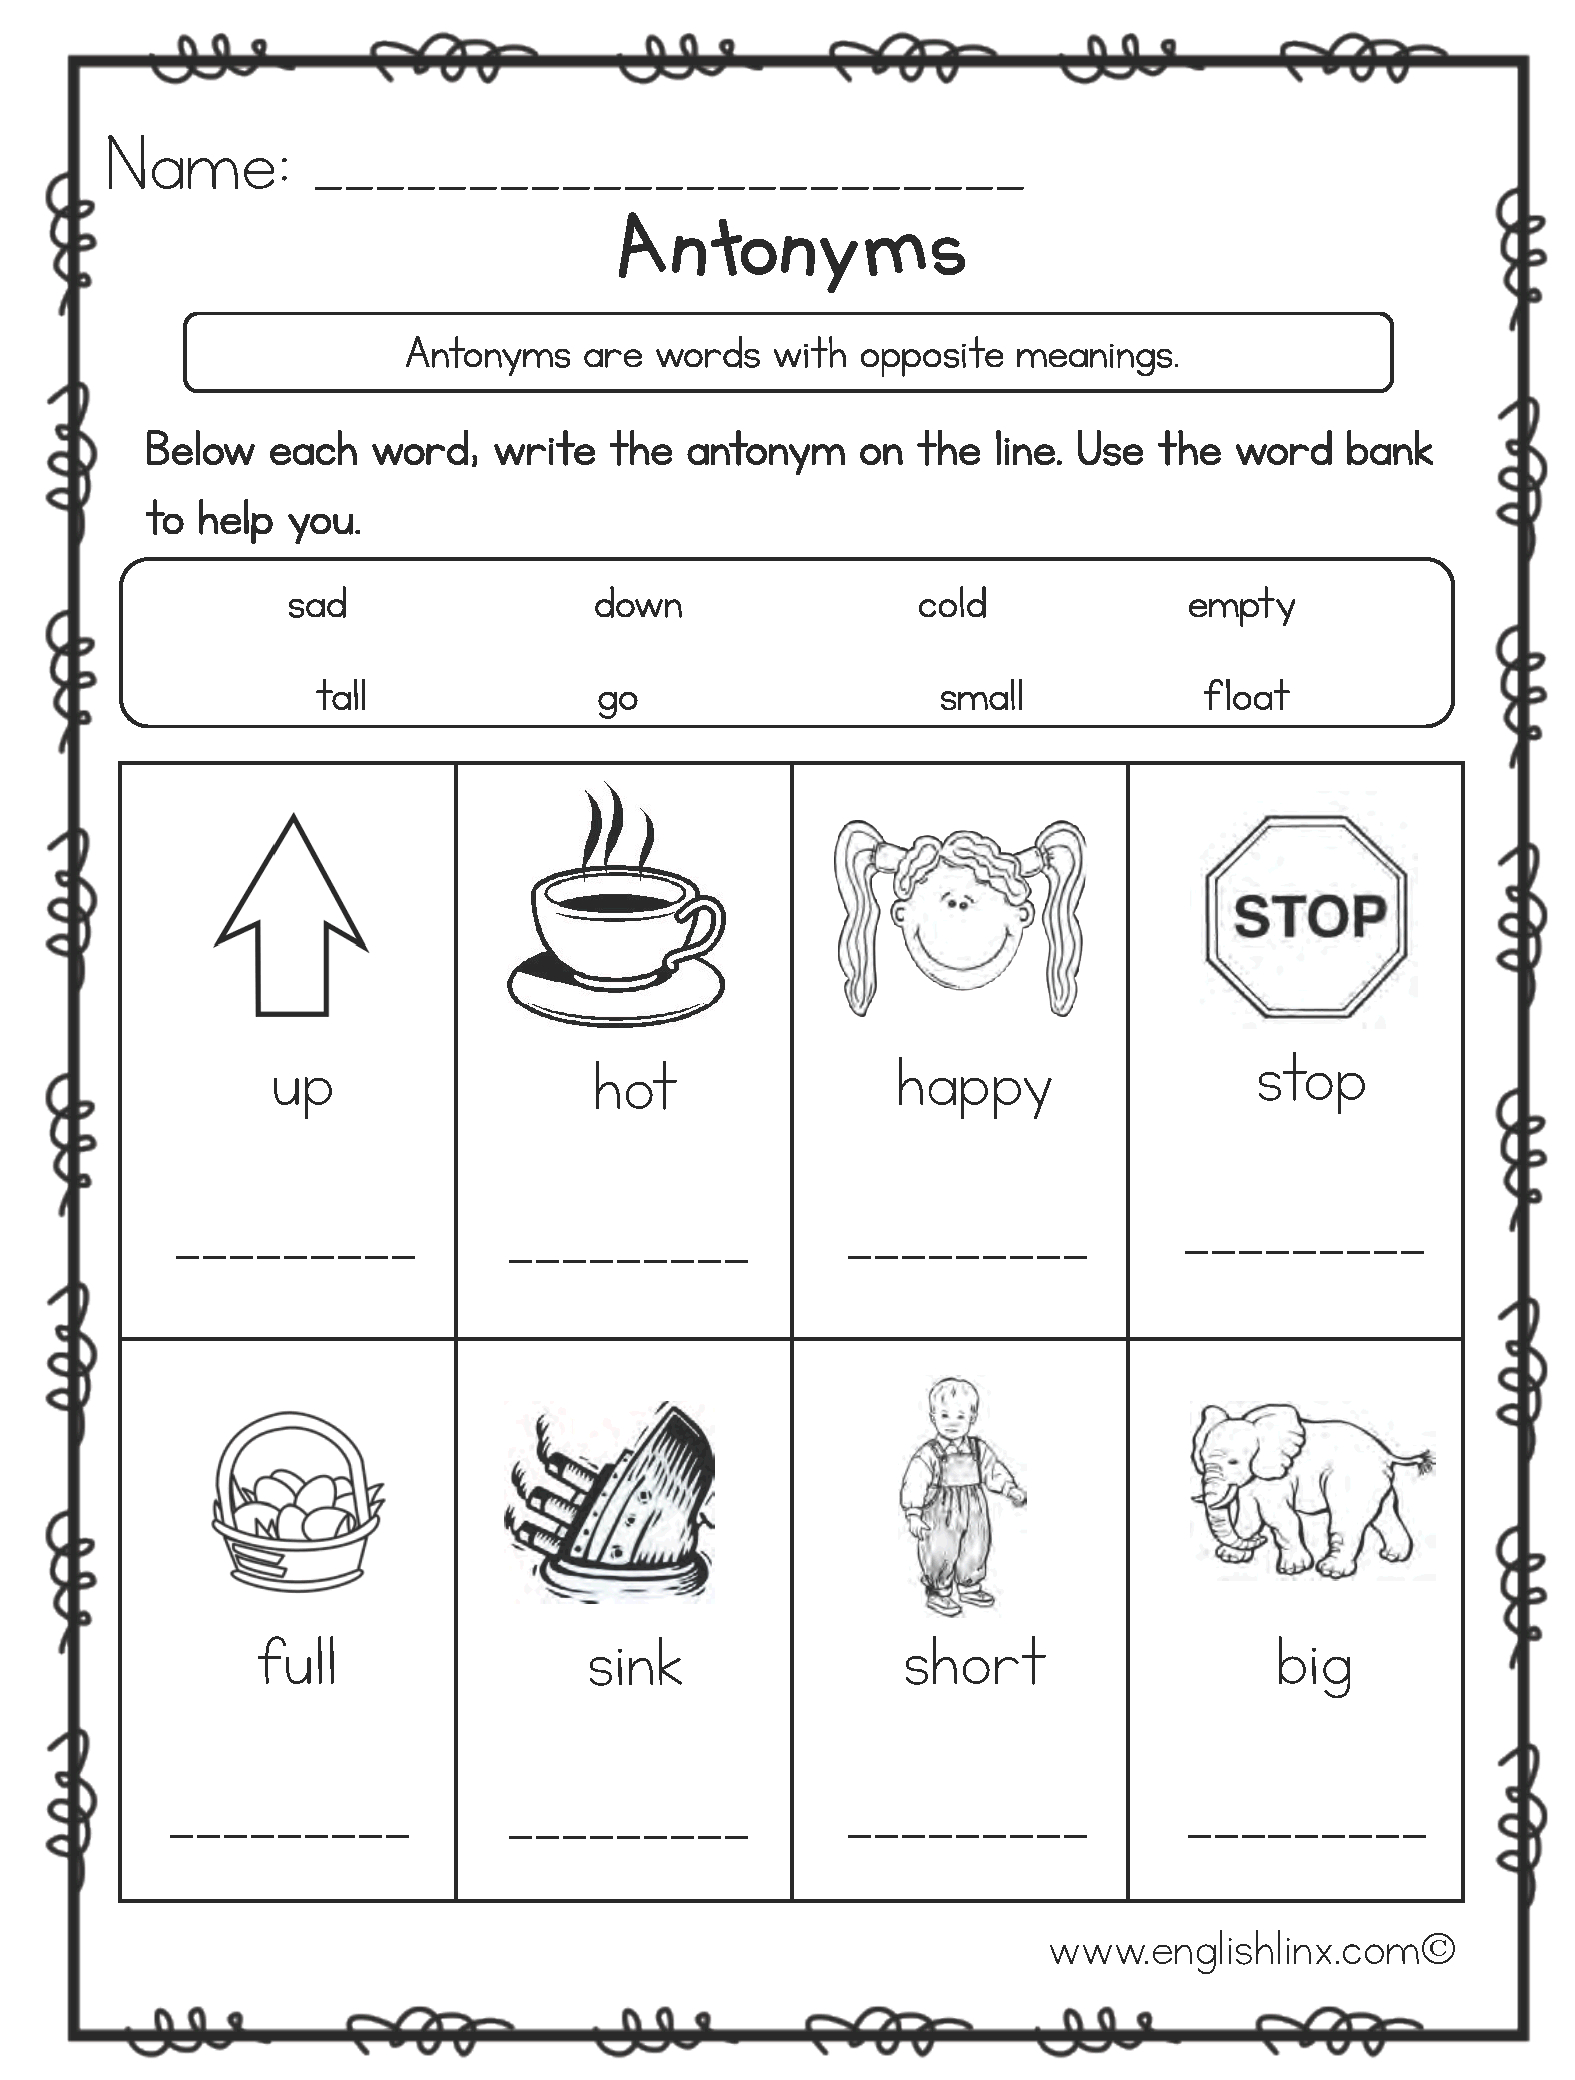 Englishlinx | Antonyms Worksheets | Antonyms Printable Worksheets